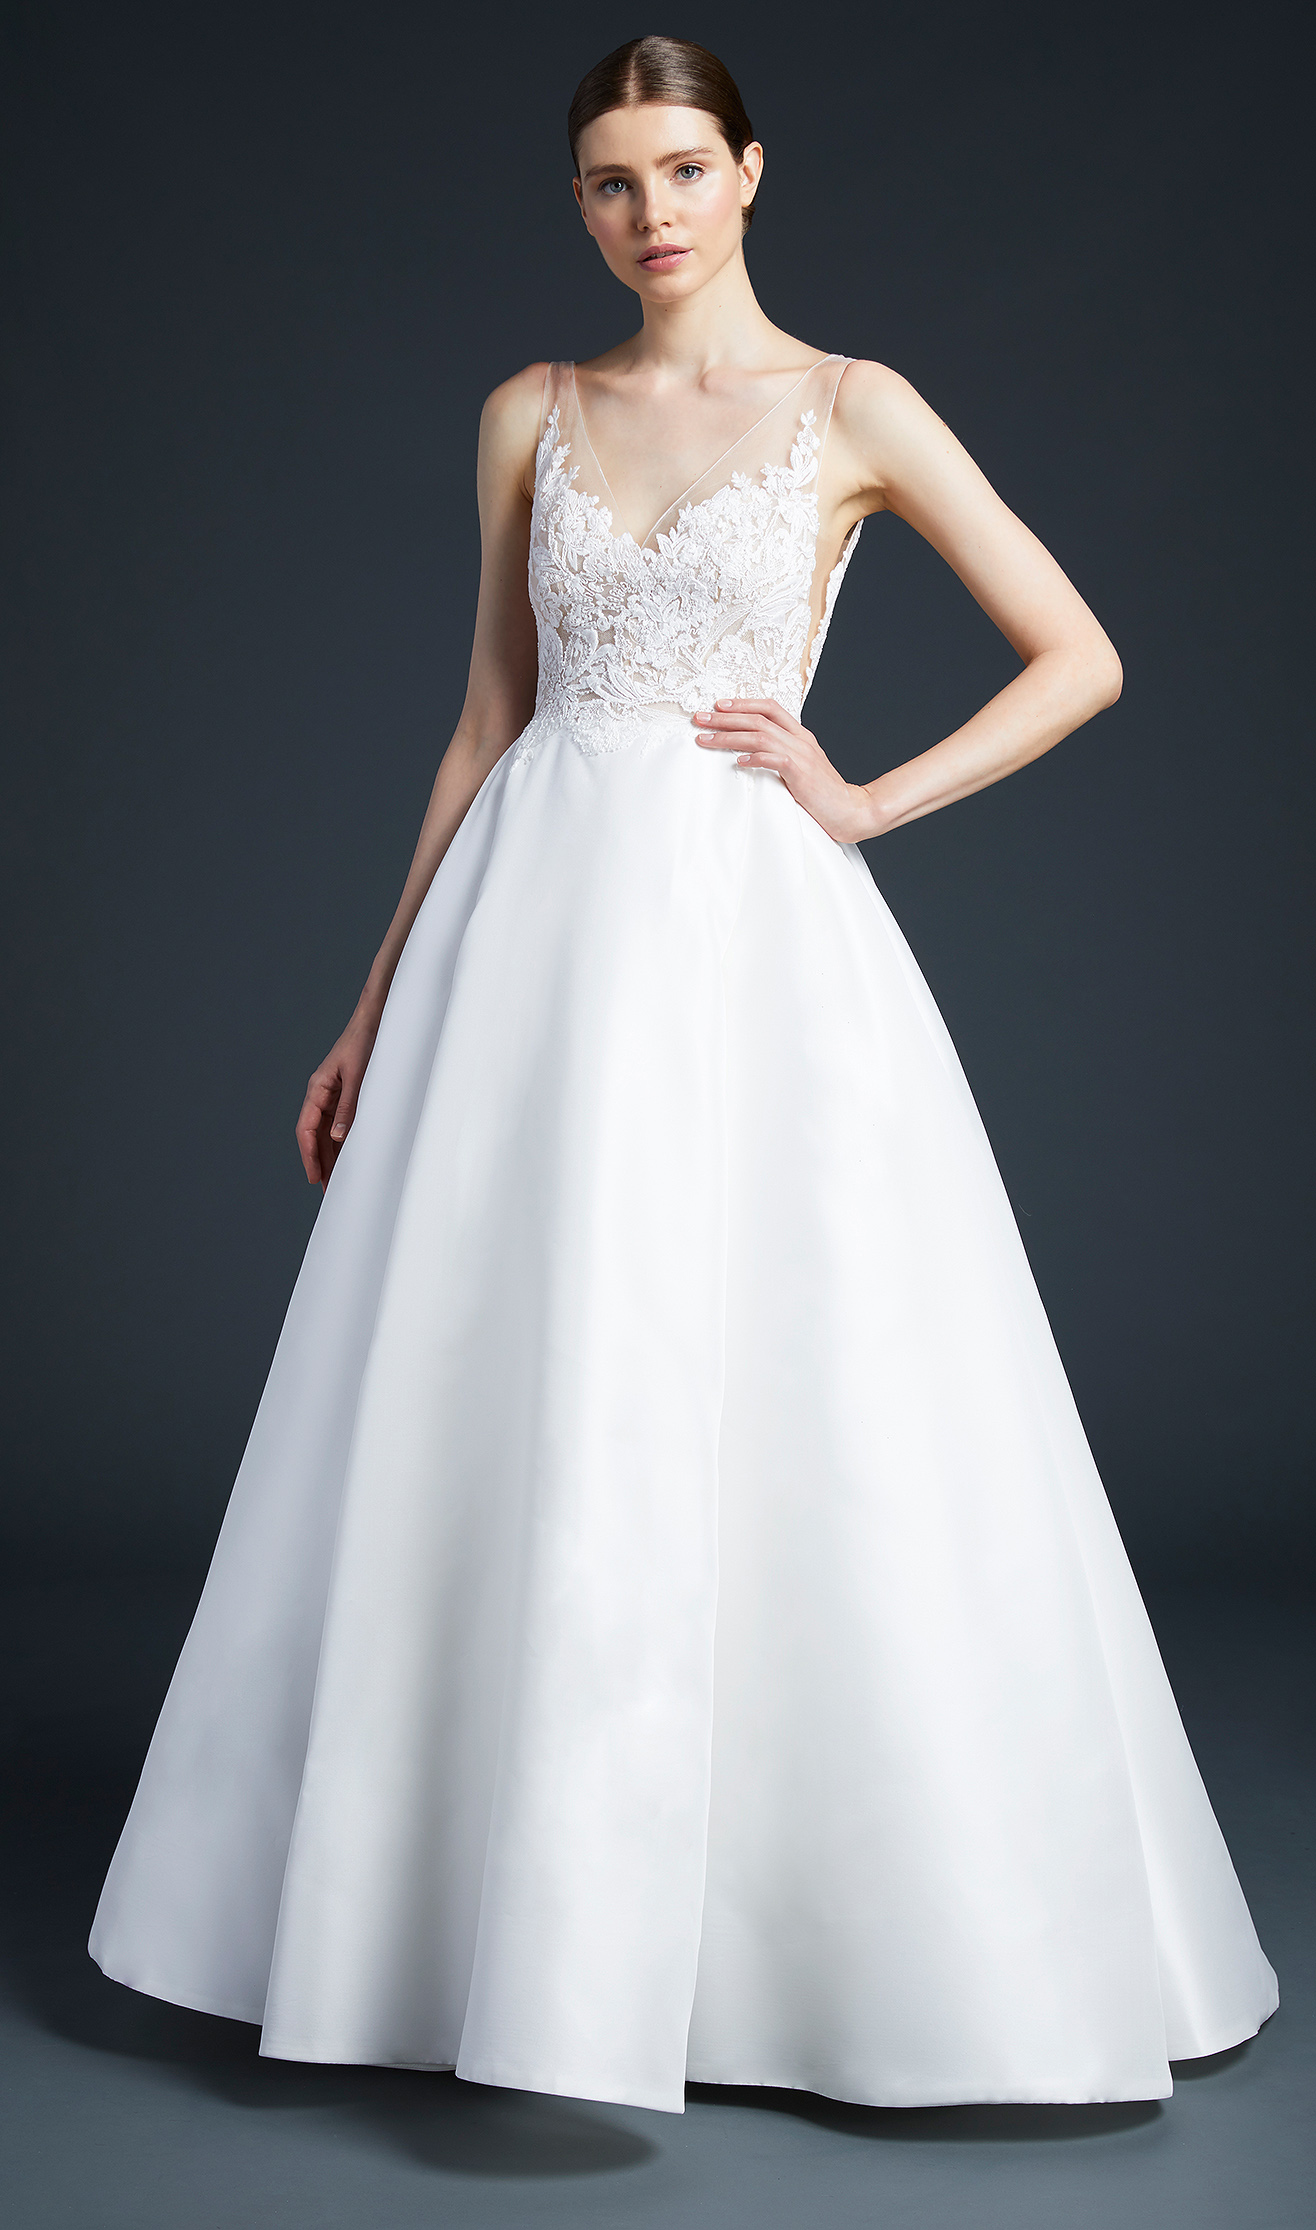 anne barge sweetheart ball gown wedding dress fall 2019